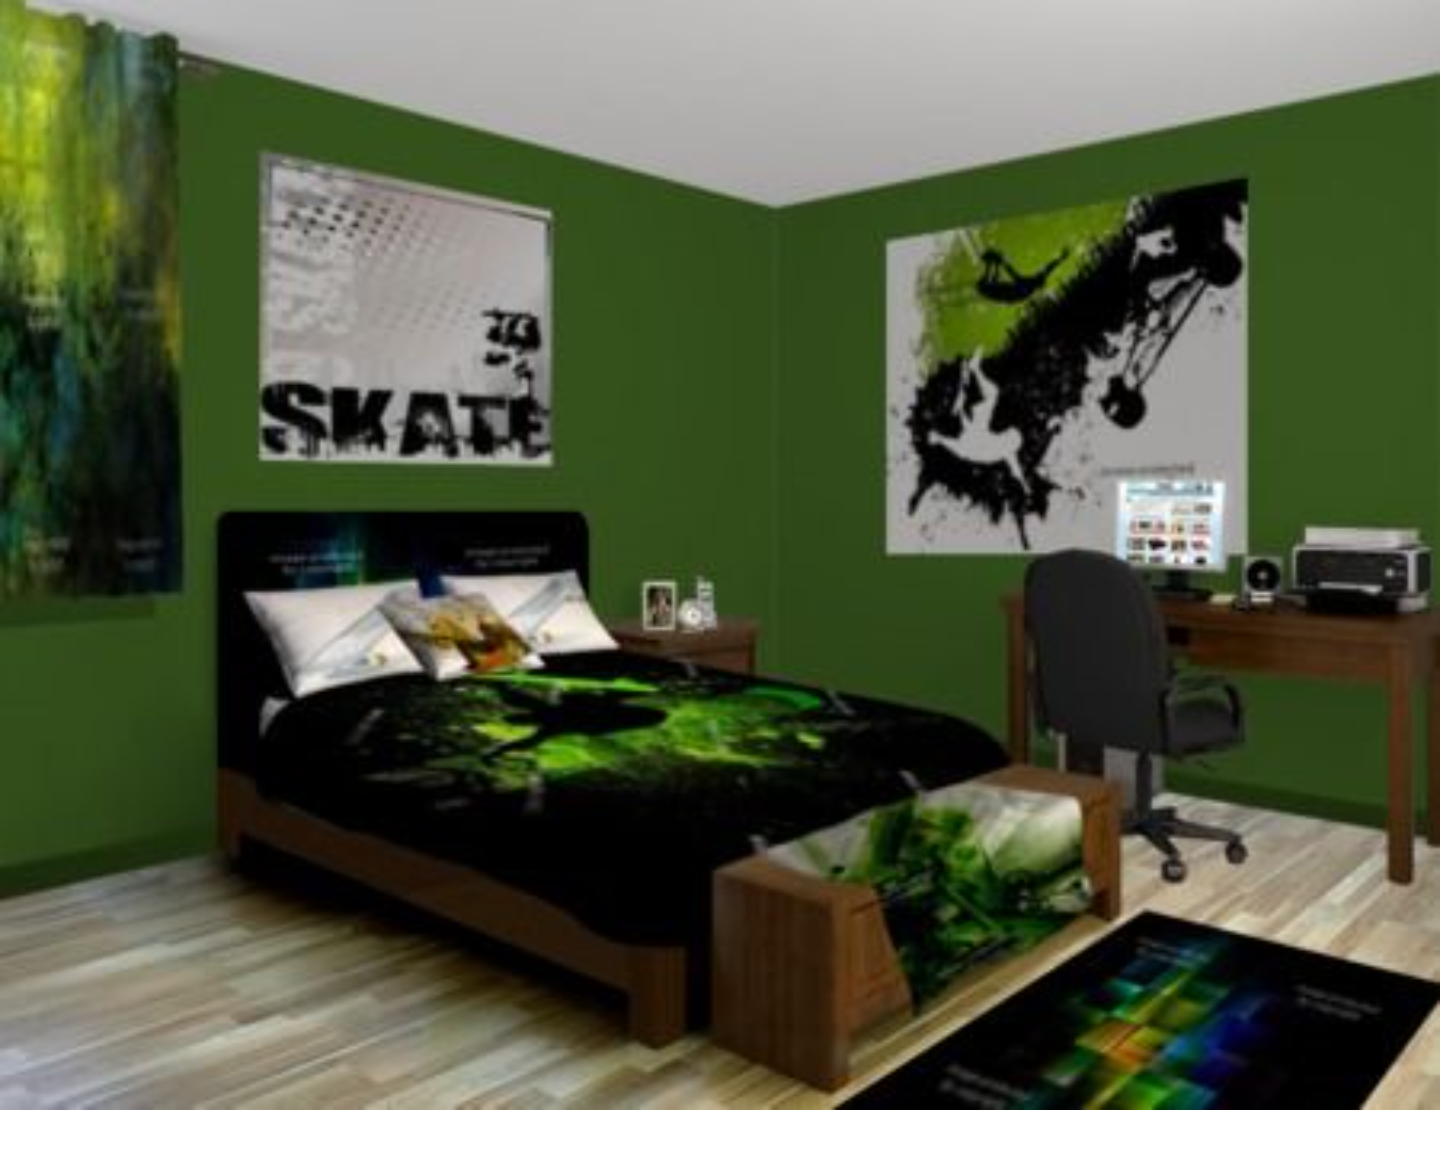 Skater Room For A Boy I Love The Green And Black Light Floor Compliments Dark Walls Decor